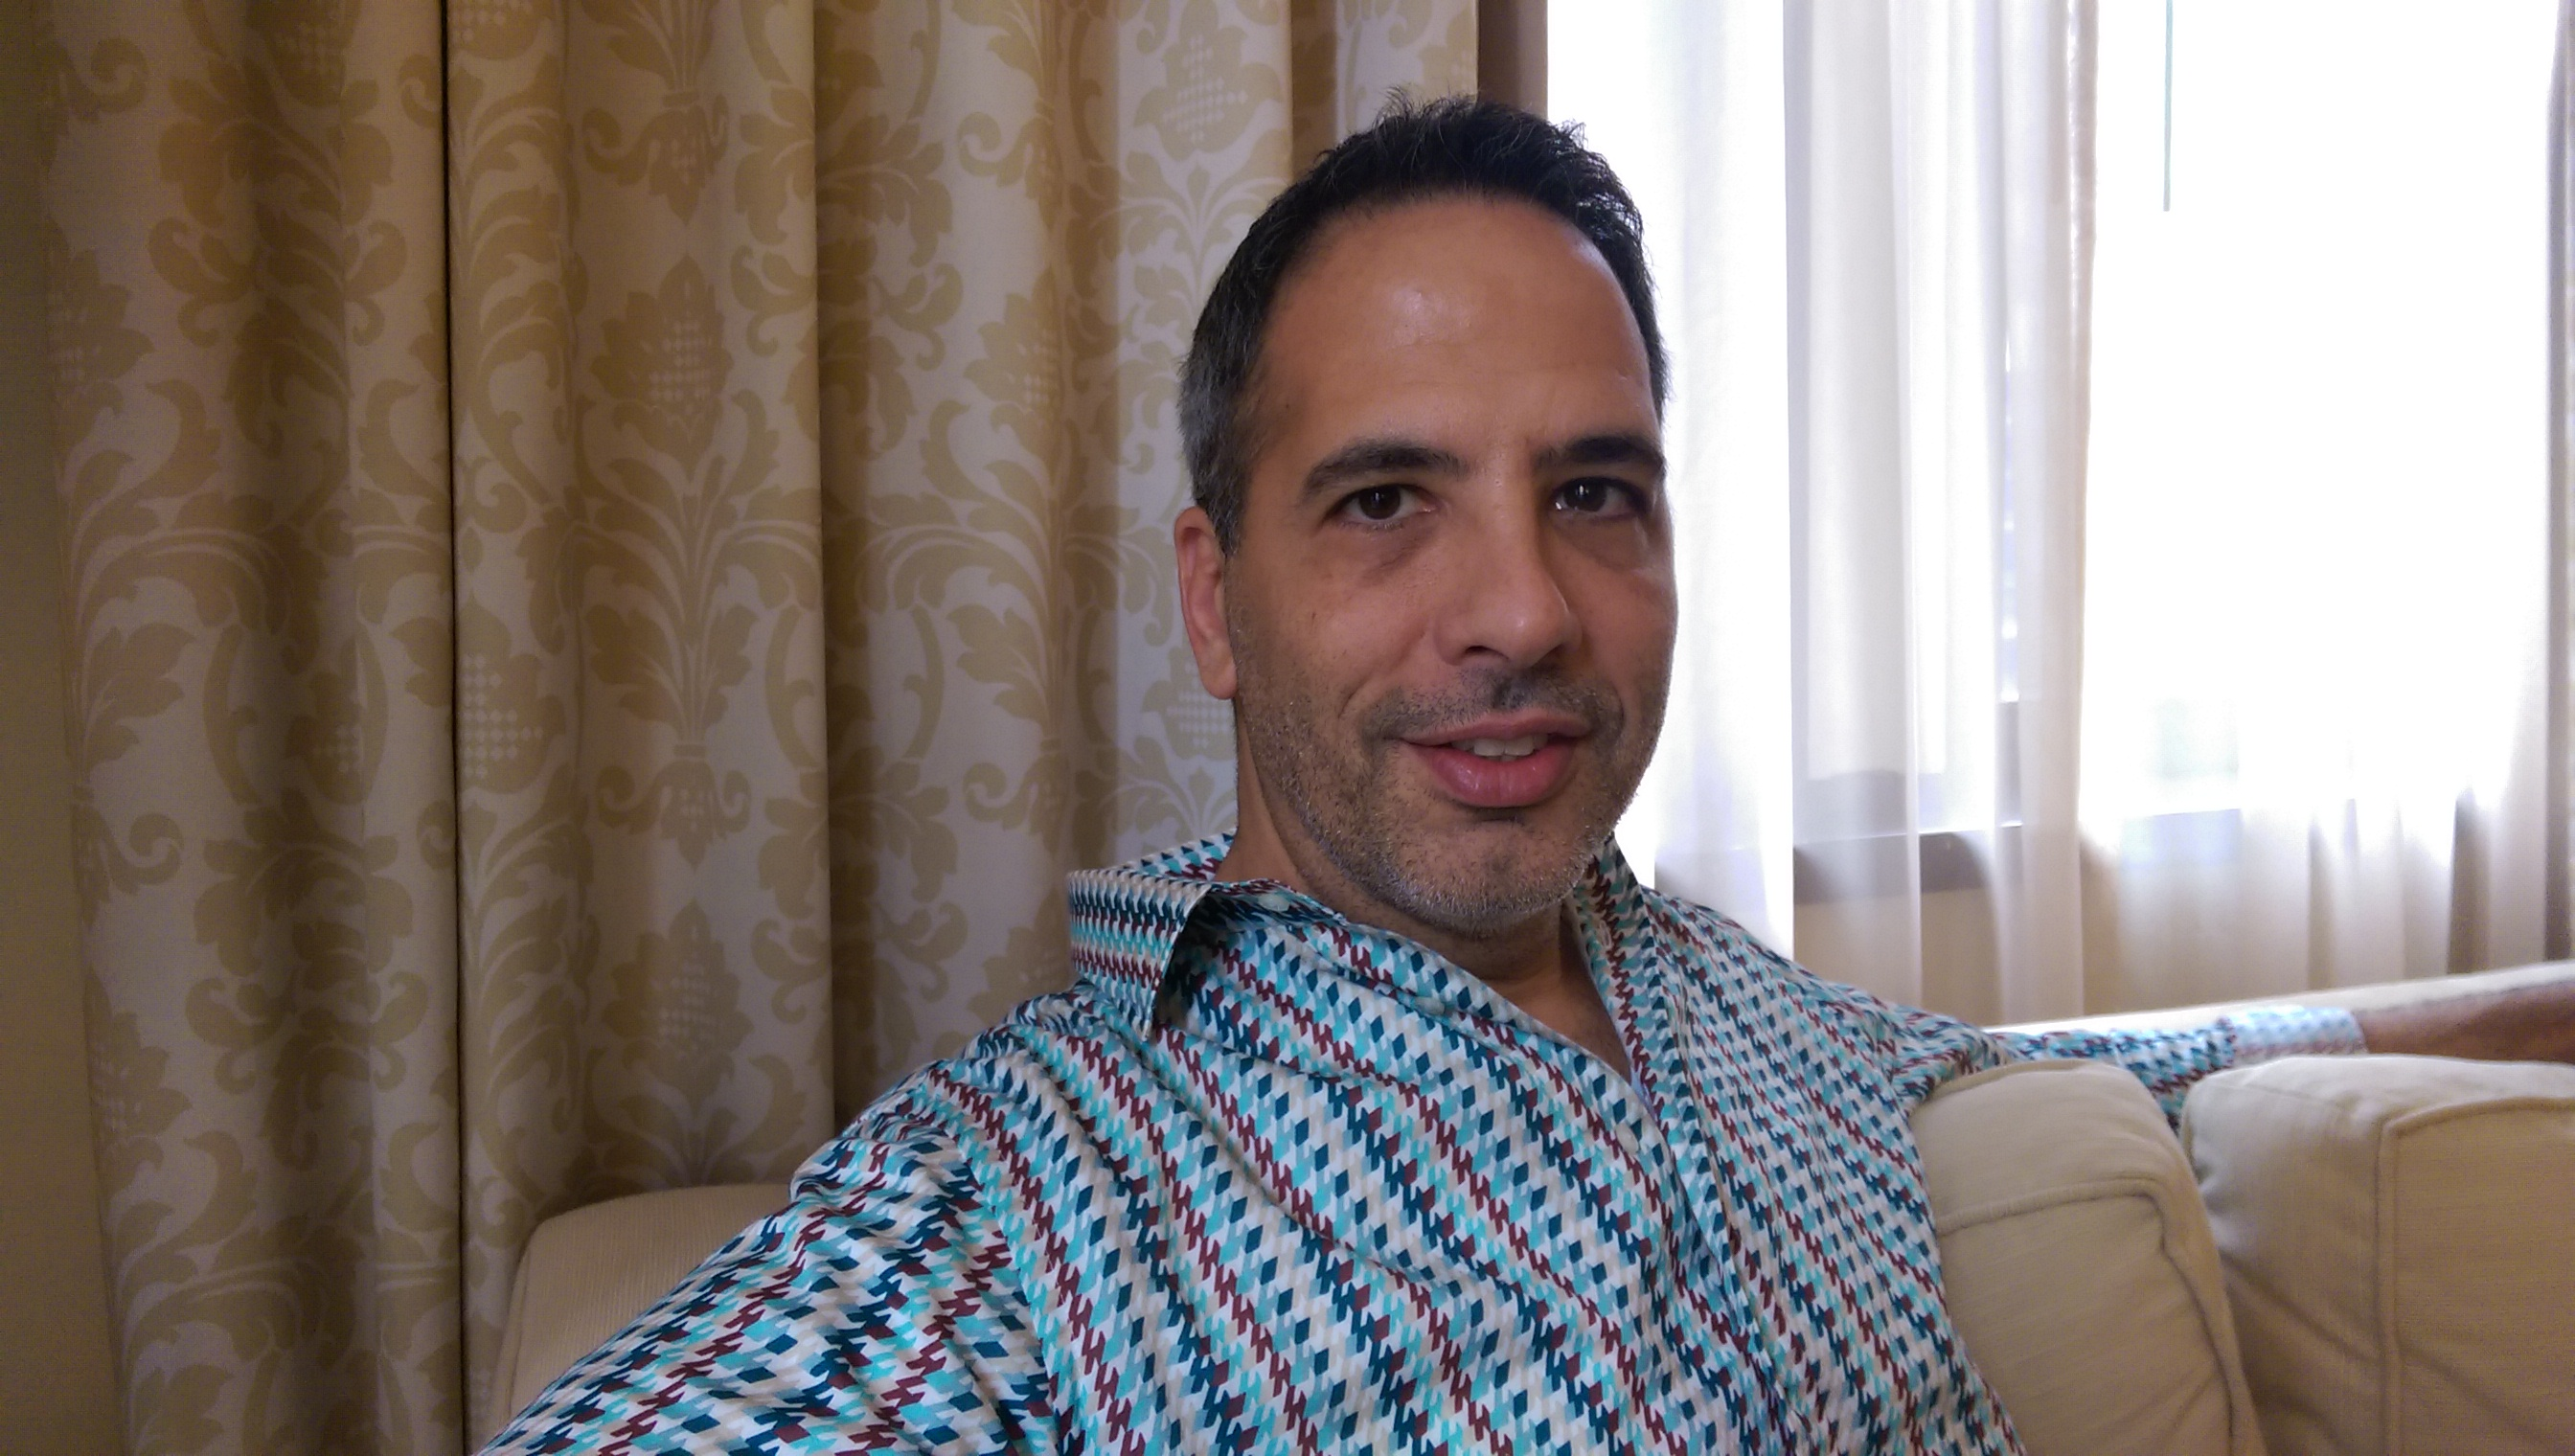 British-Israeli chef Yottam Ottolenghi has become known for his innovative ways to prepare vegetable dishes.